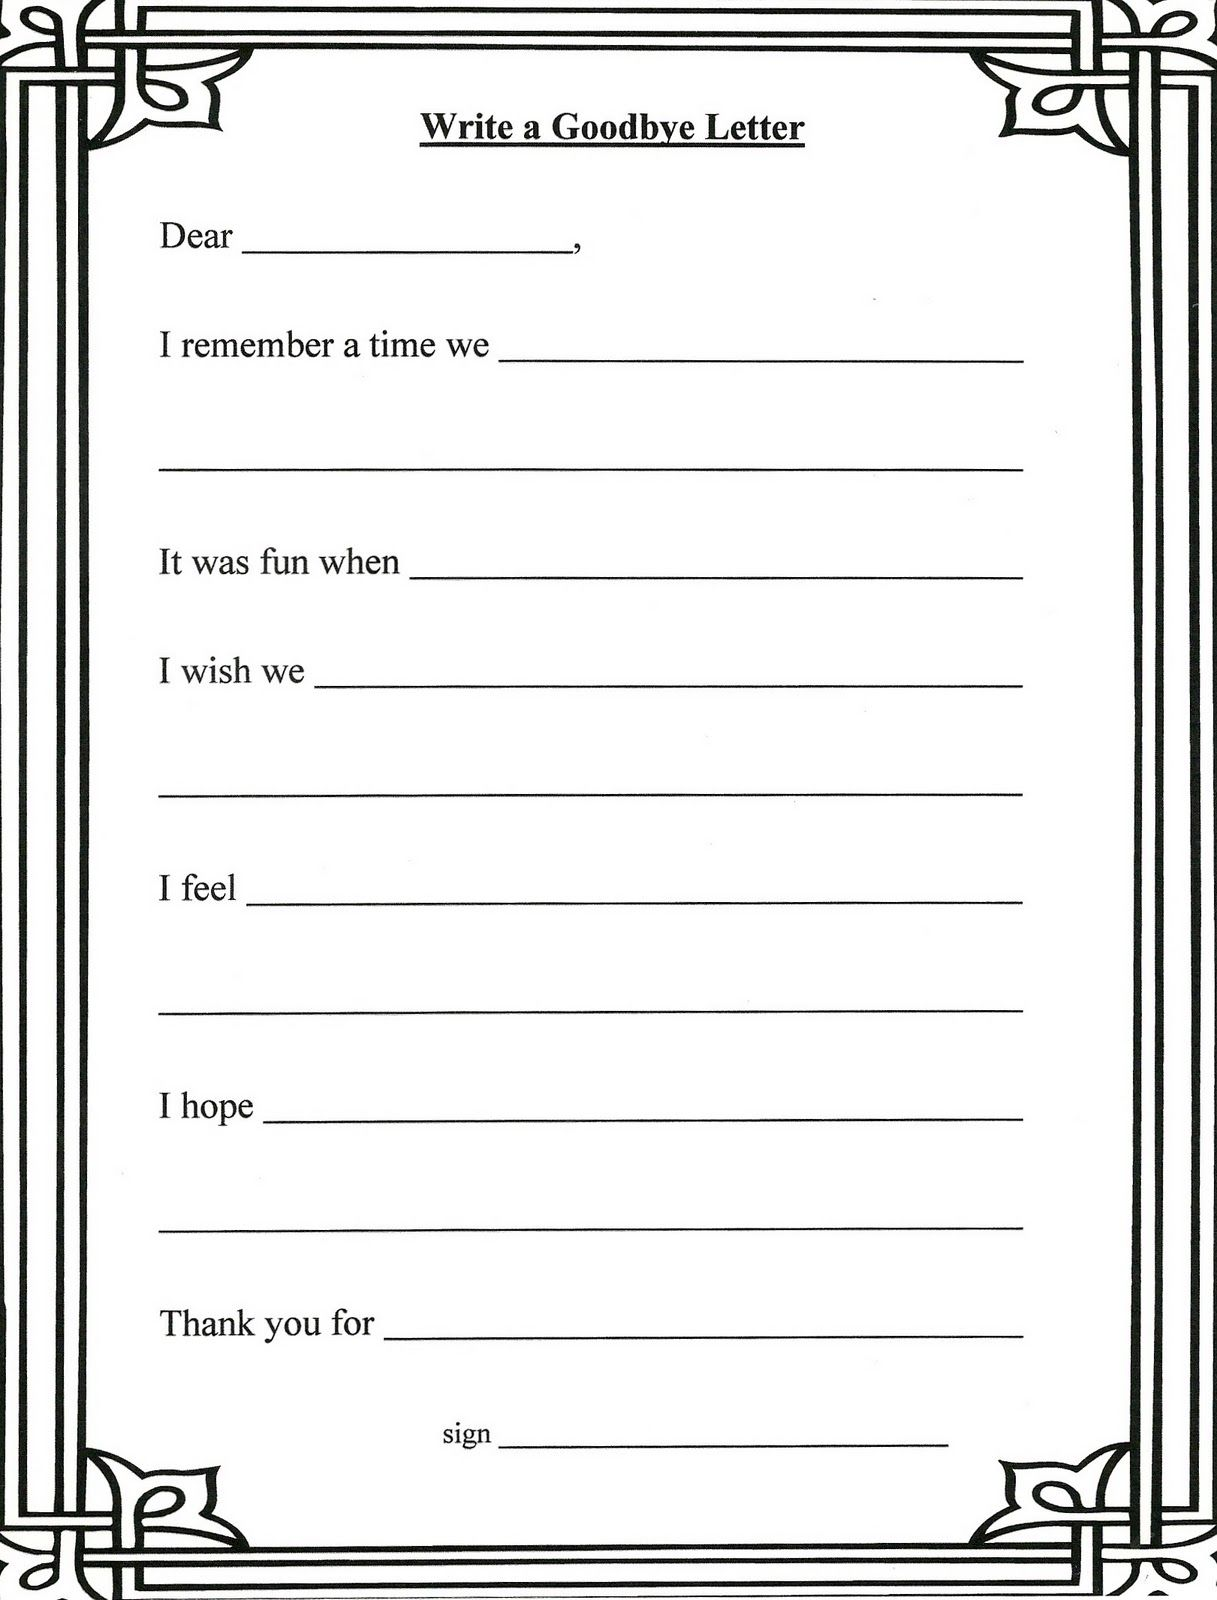 Worksheets For Therapy : Grief and loss worksheets writing a letter to the person